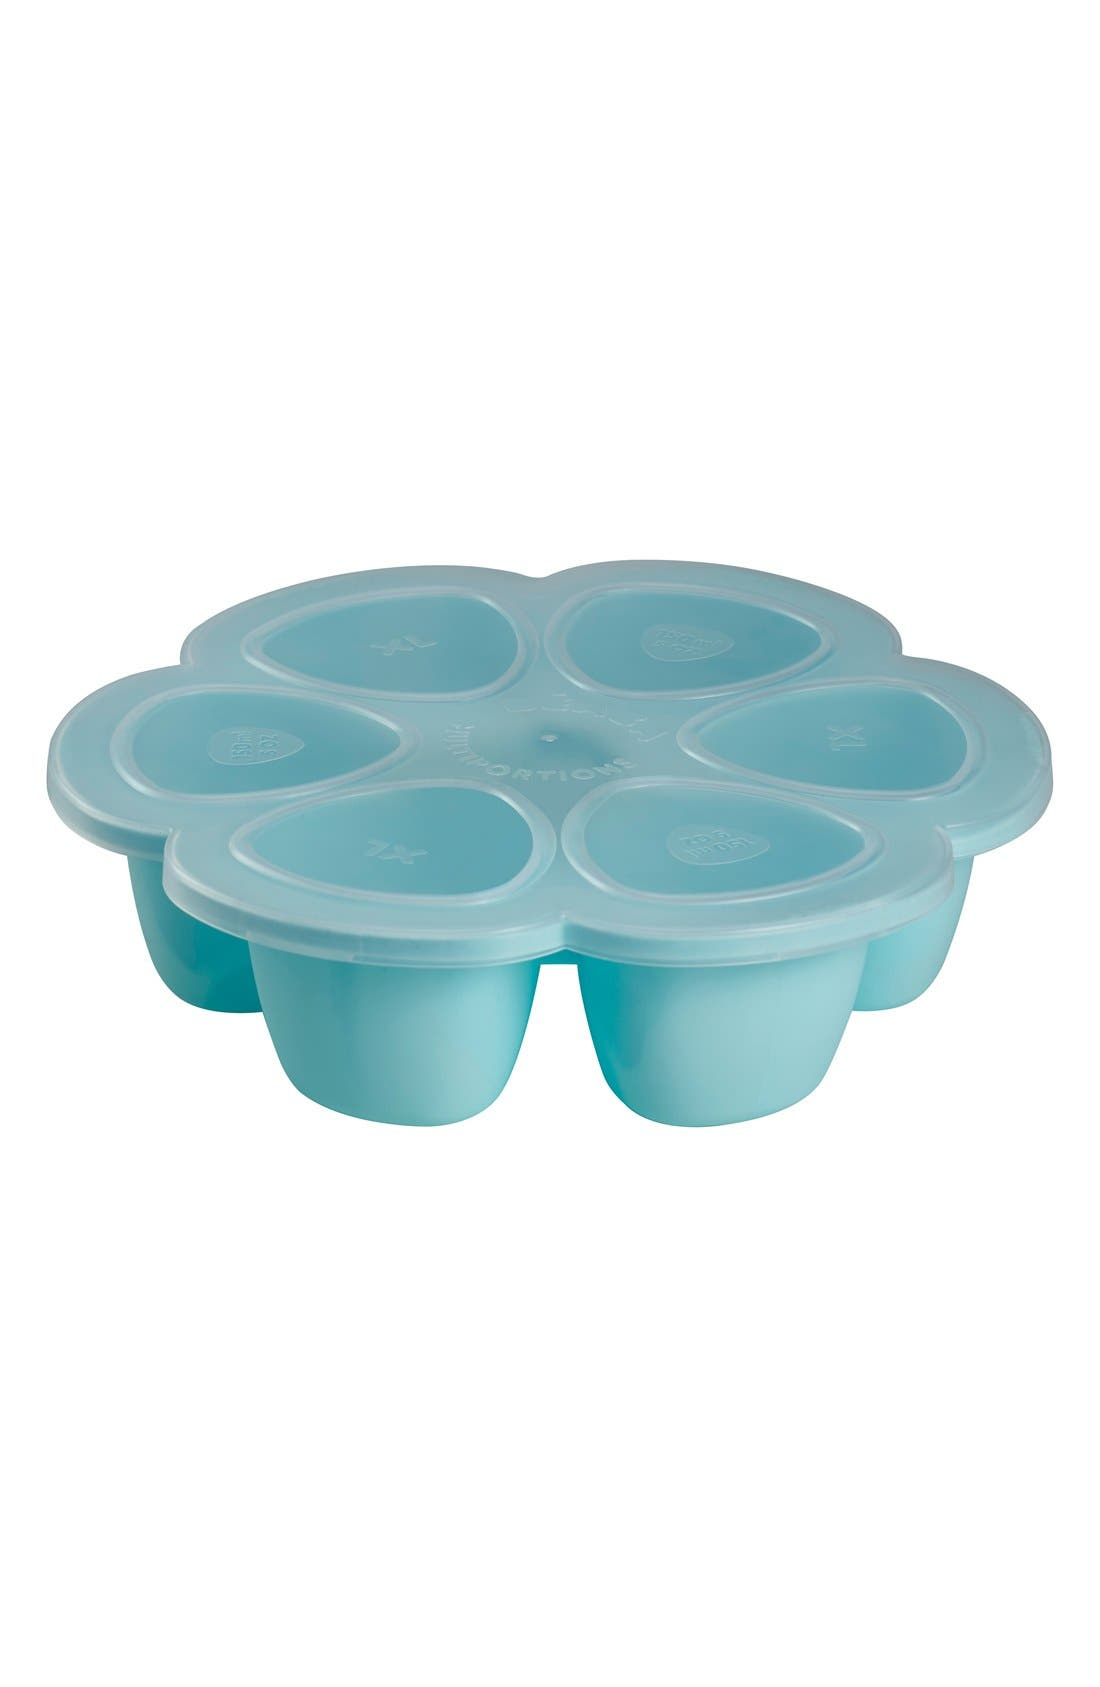 'Multiportions<sup>™</sup>' Silicone 3 oz. Food Cup Tray,                             Alternate thumbnail 2, color,                             Sky